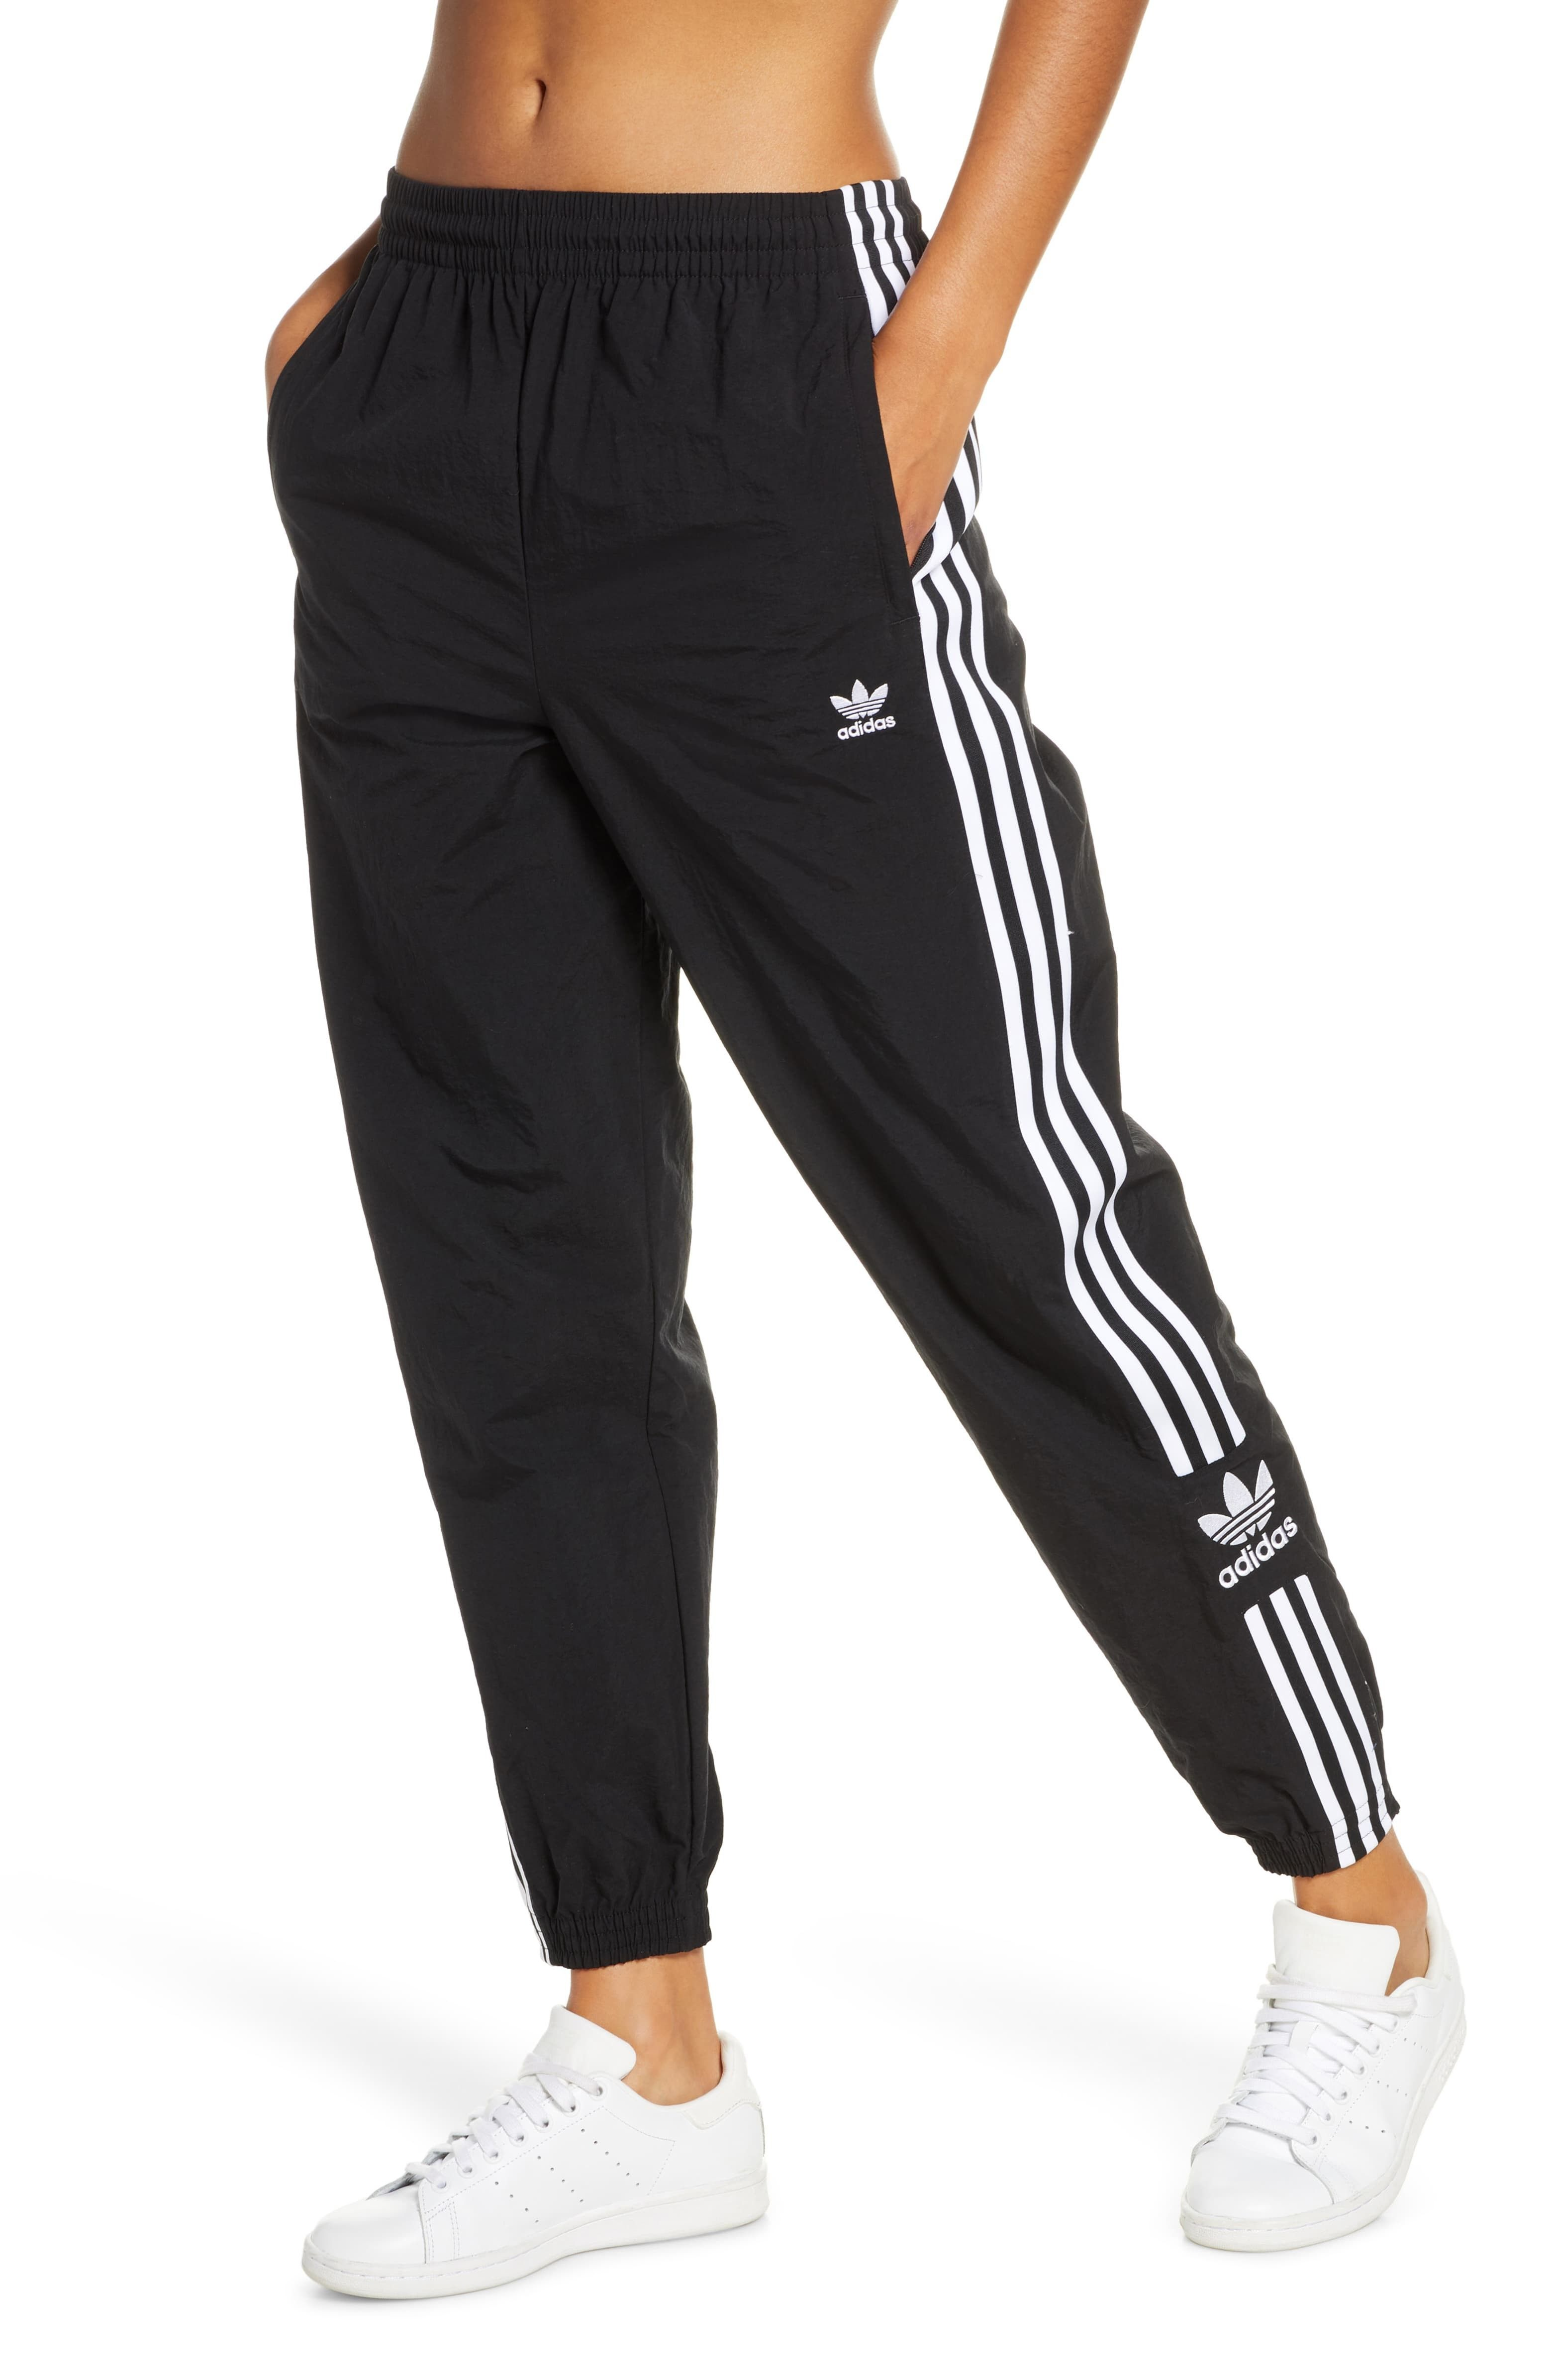 Adicolor Lock Up Woven Track Pants | Track pants outfit ...